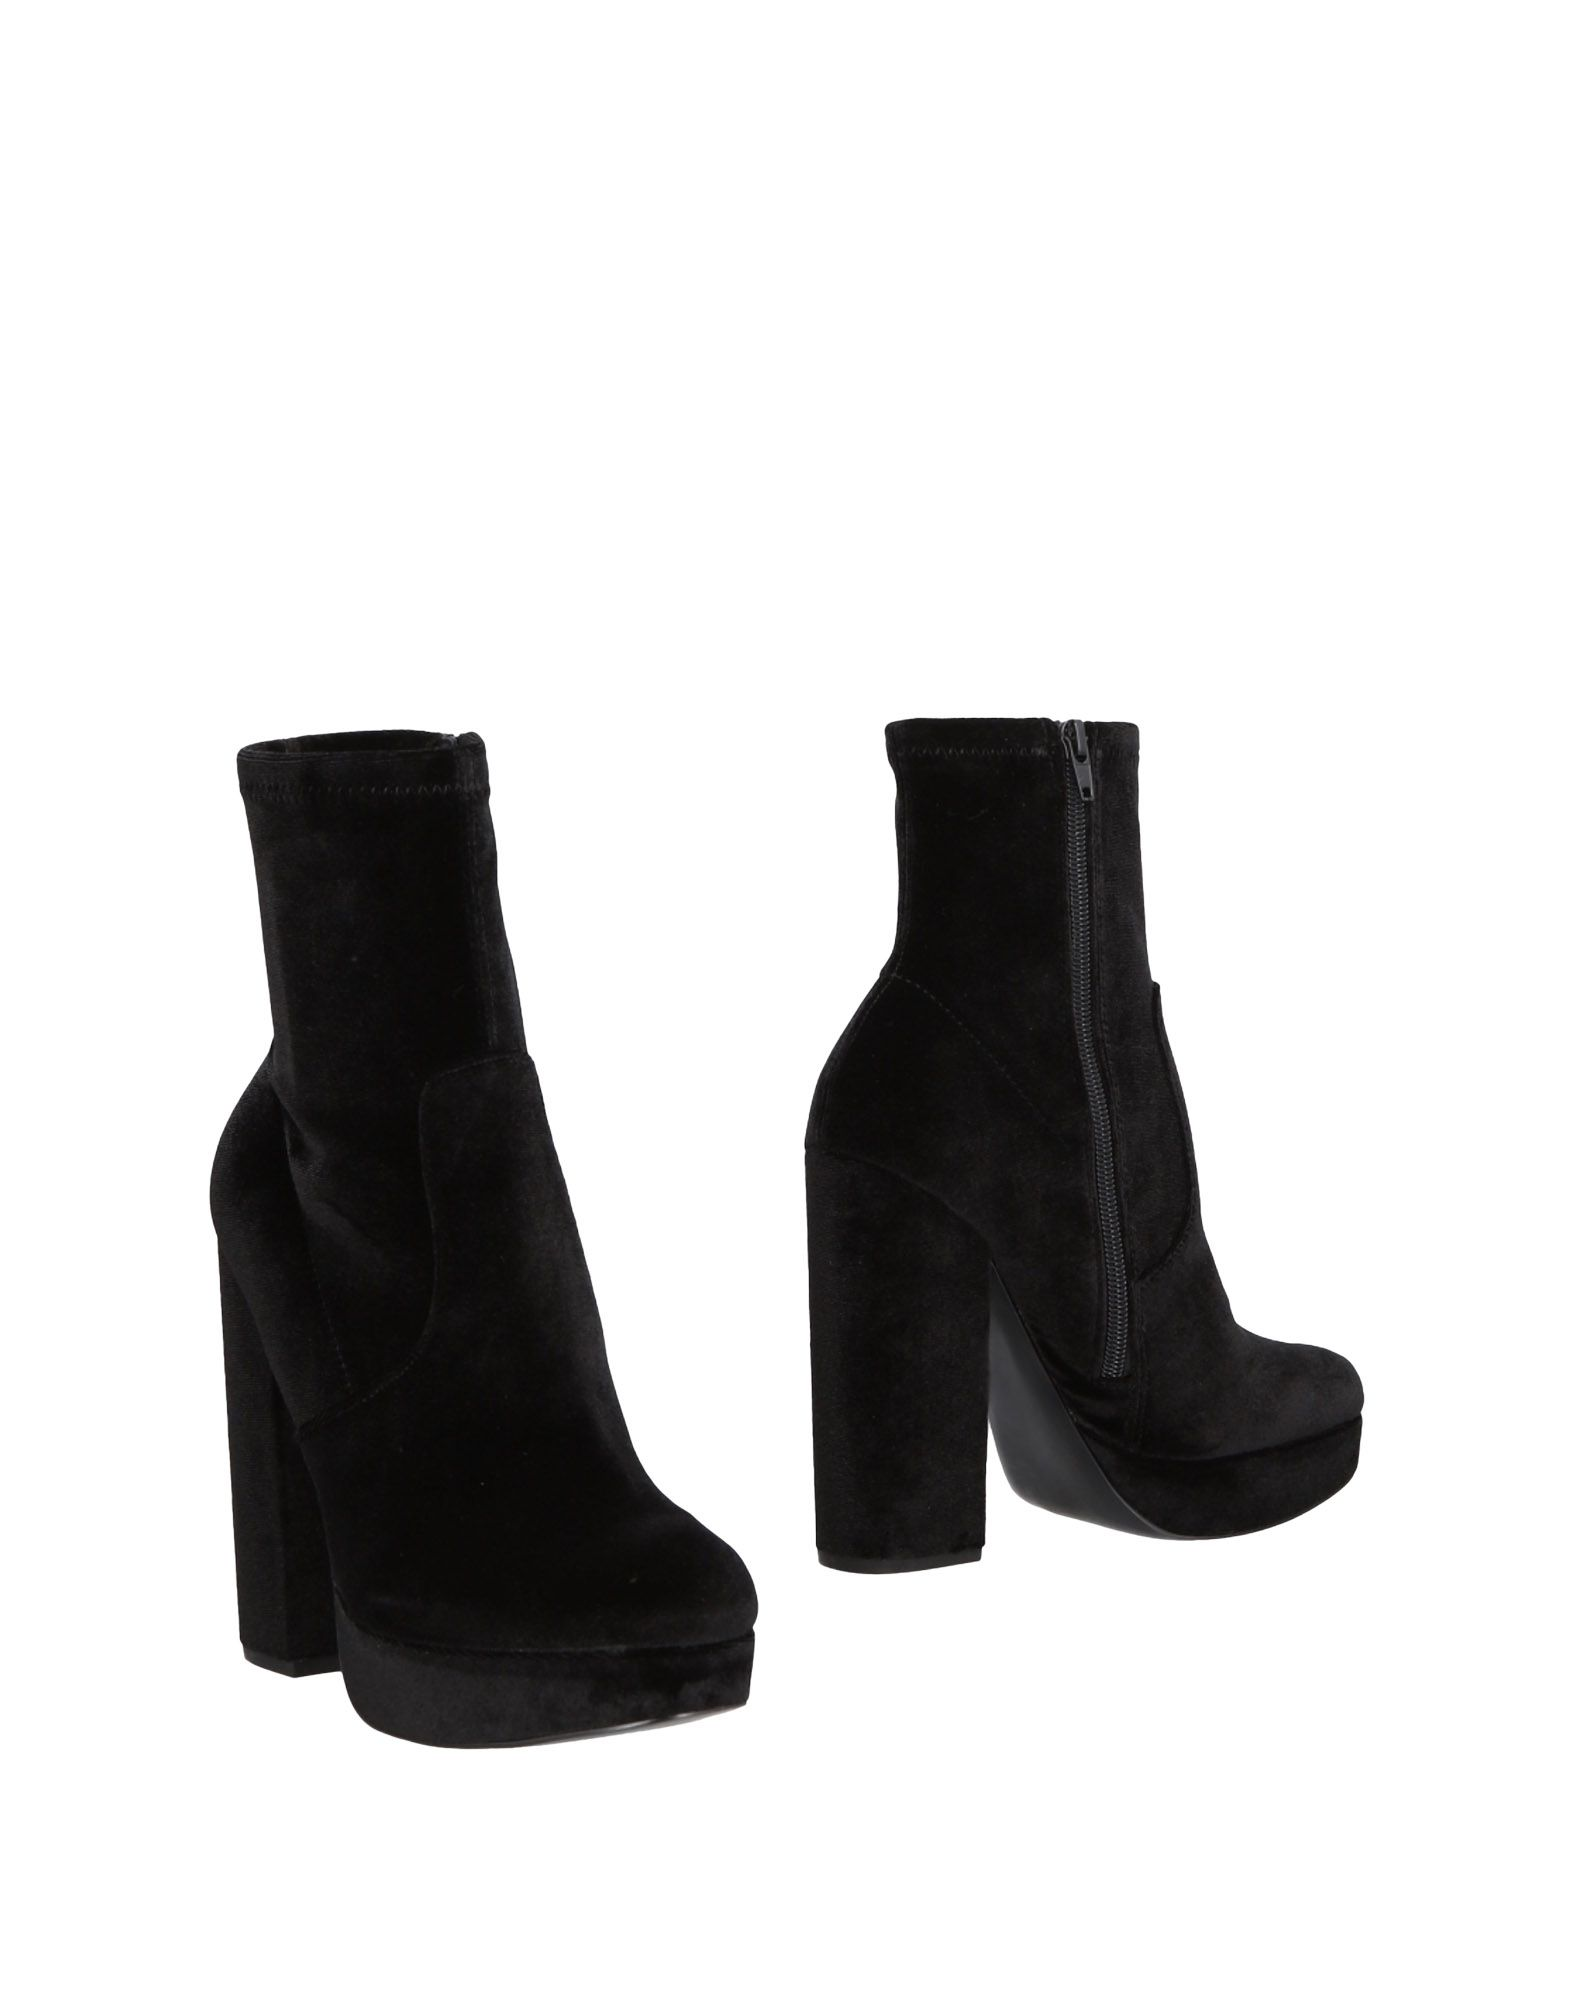 Jeffrey Campbell Ankle Campbell Boot - Women Jeffrey Campbell Ankle Ankle Boots online on  Australia - 11467282OW fb562a